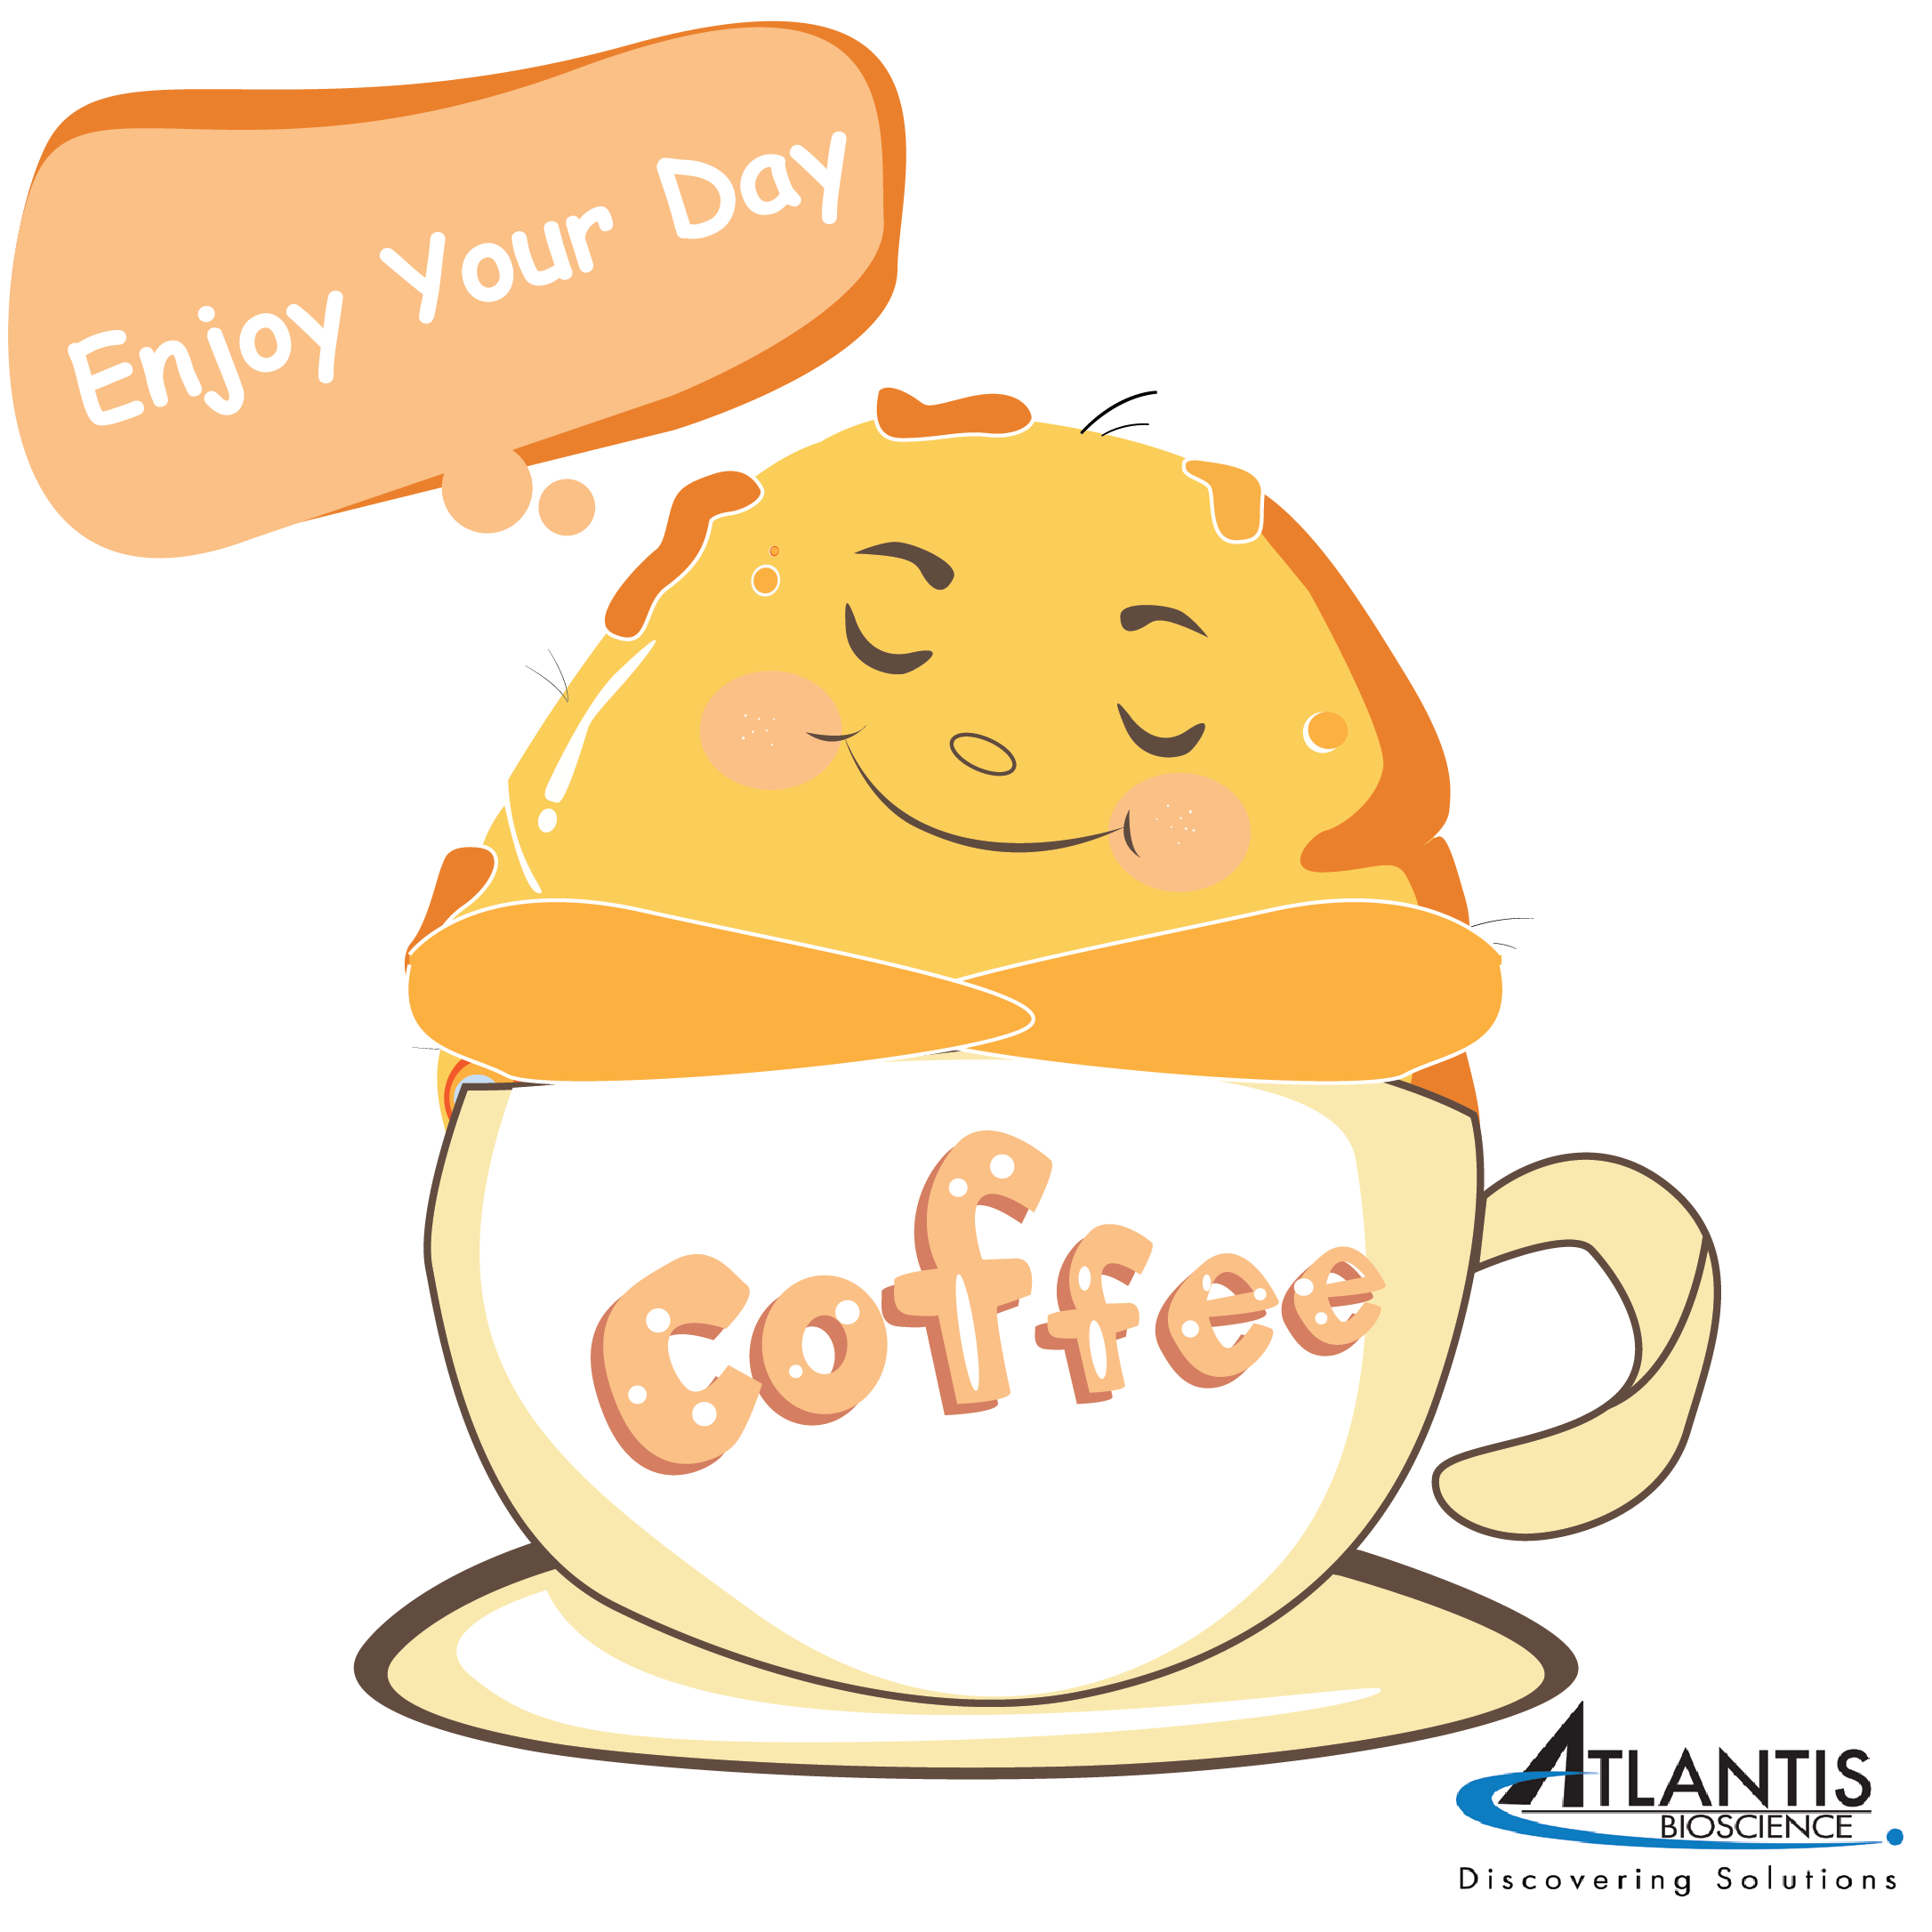 March'19-Free Atlantis Whatapp stickers for downloads